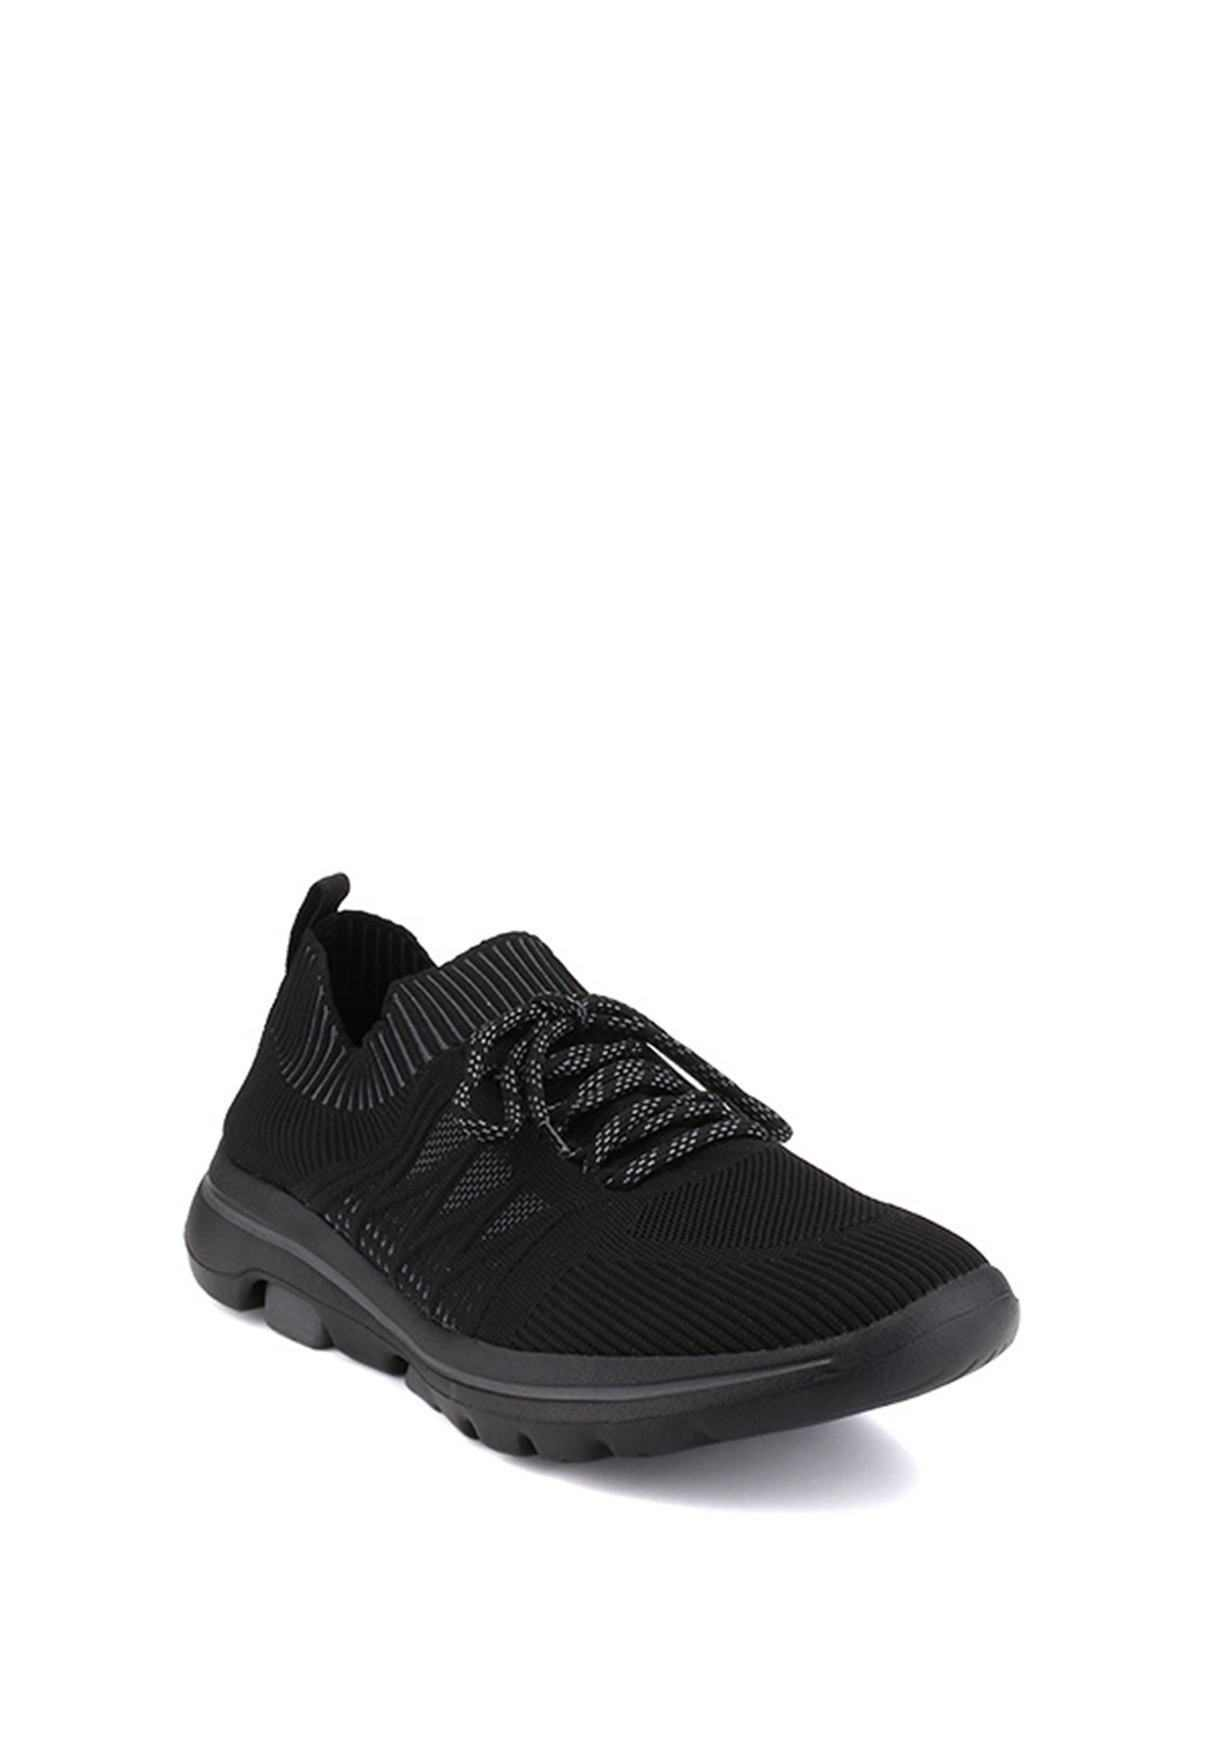 Men Sneaker Shoes